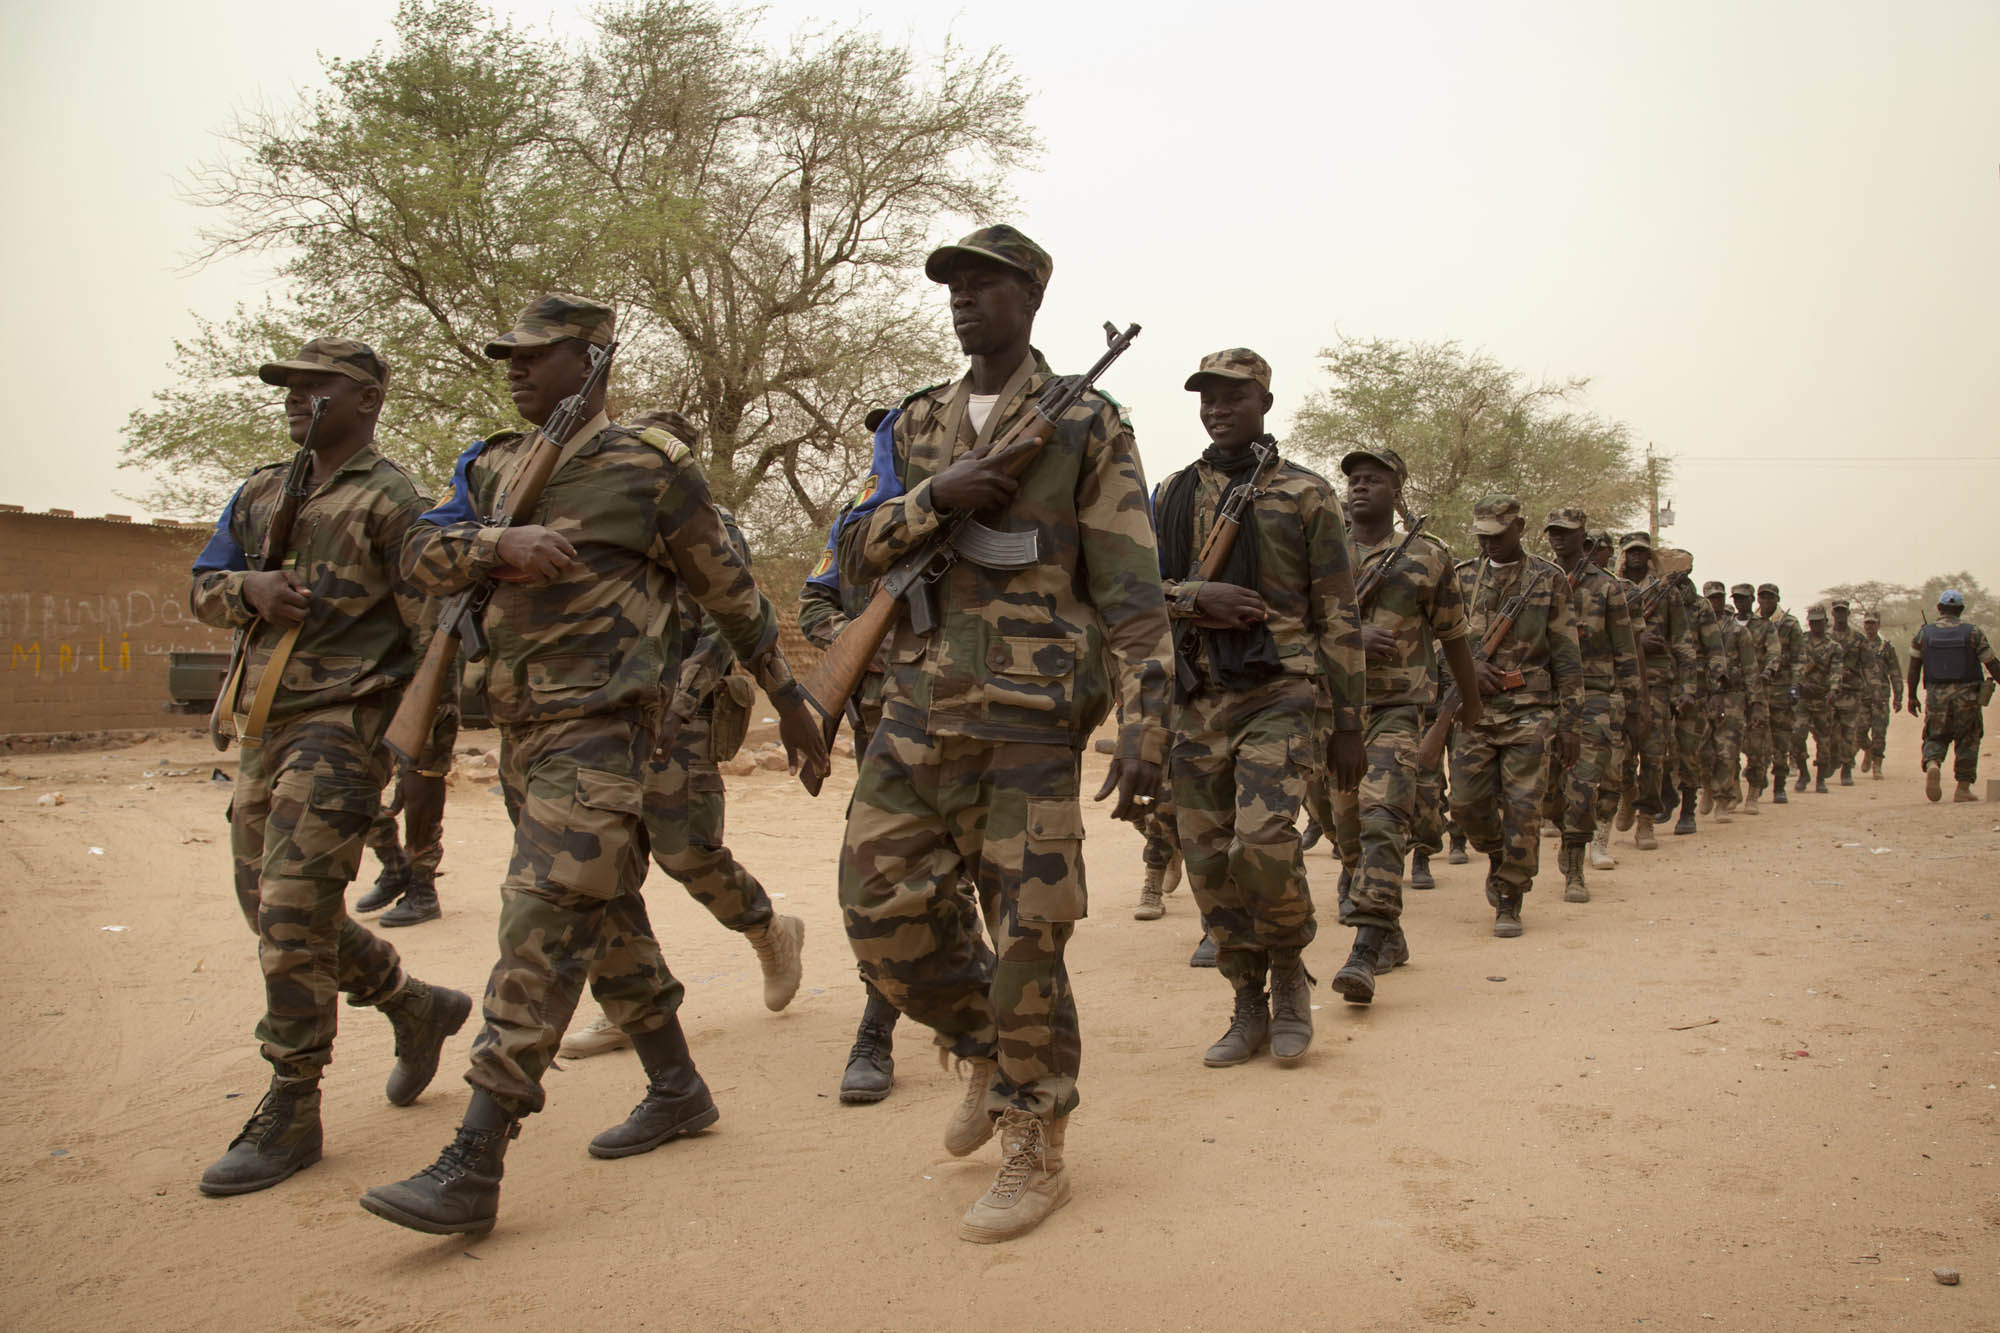 Picture of Malian soldiers marching together.